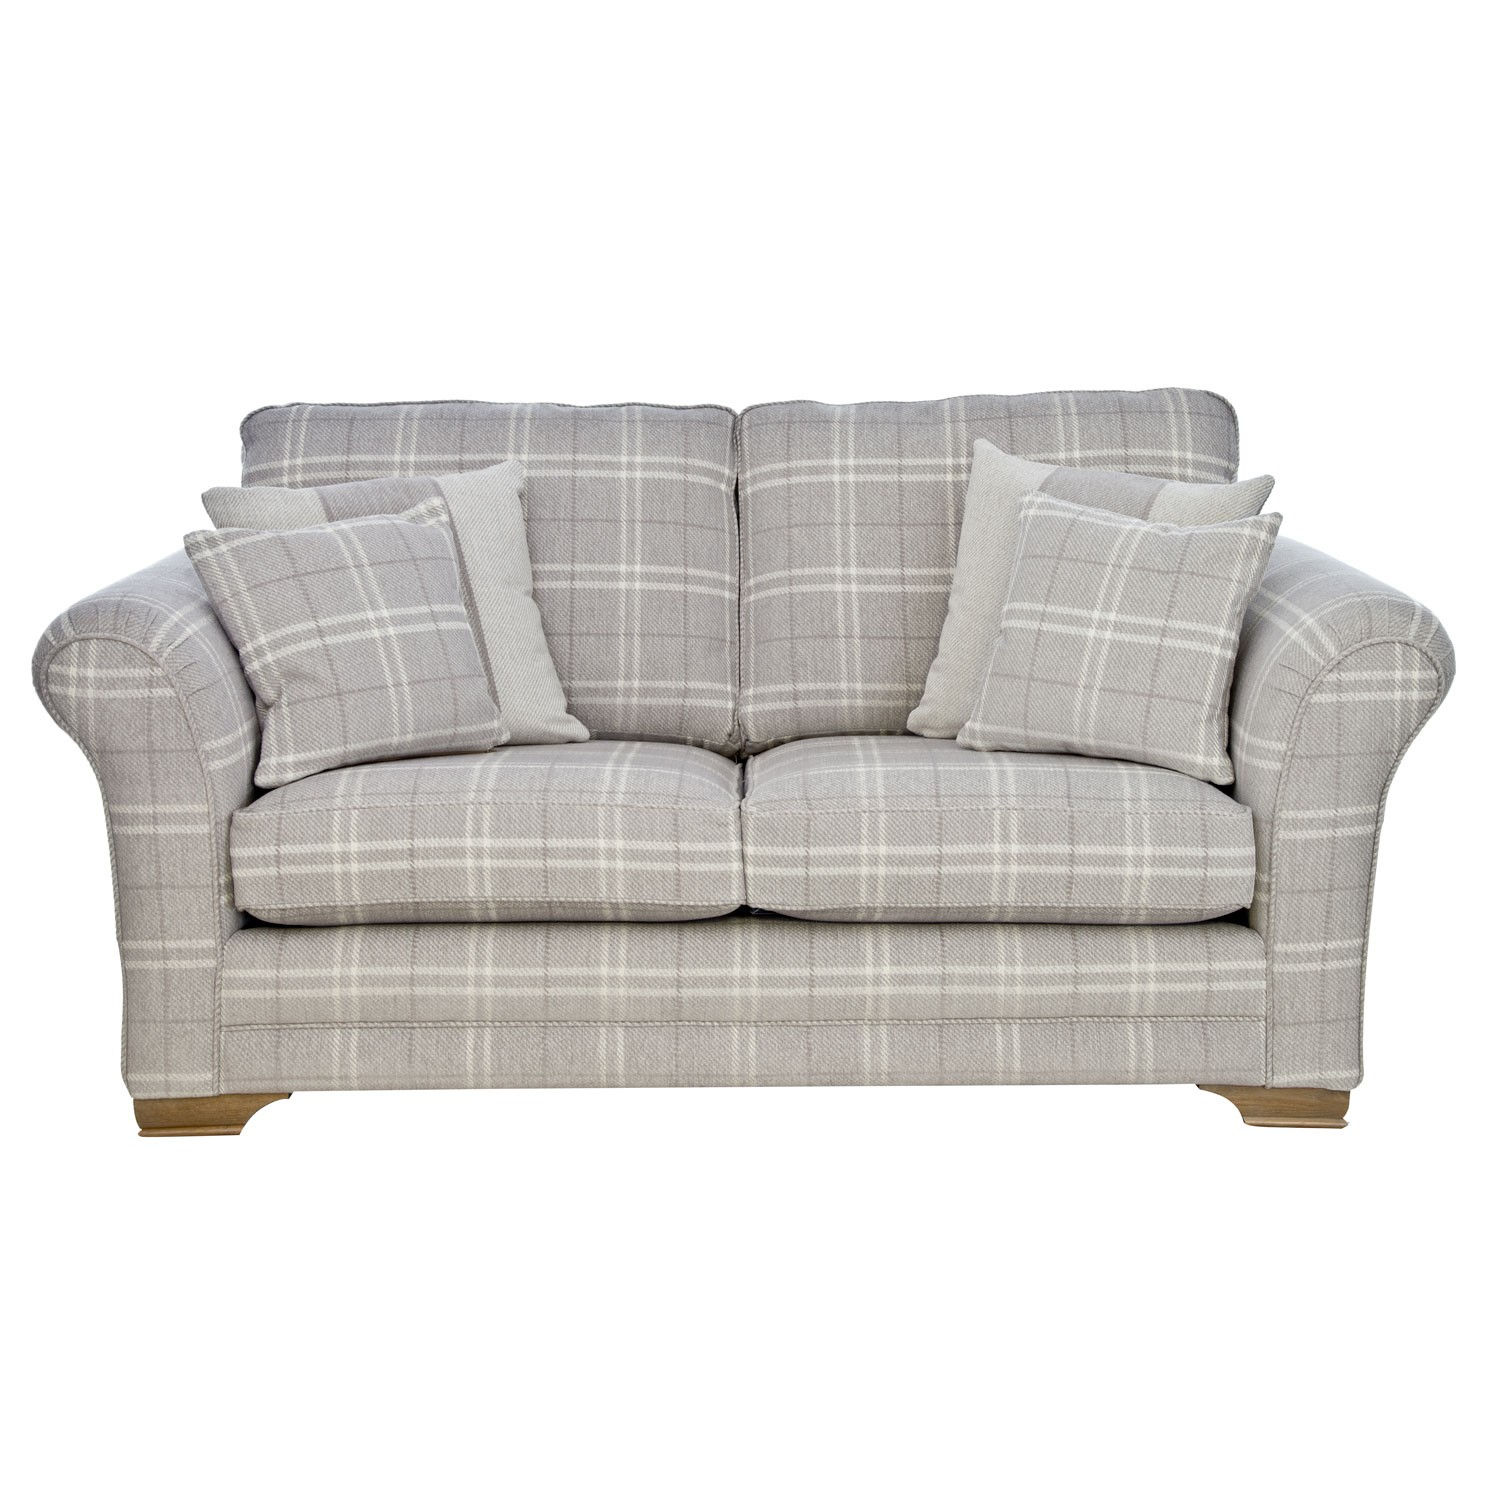 Peachy Georgia Two Seater Fabric Sofa Small Home Remodeling Inspirations Cosmcuboardxyz